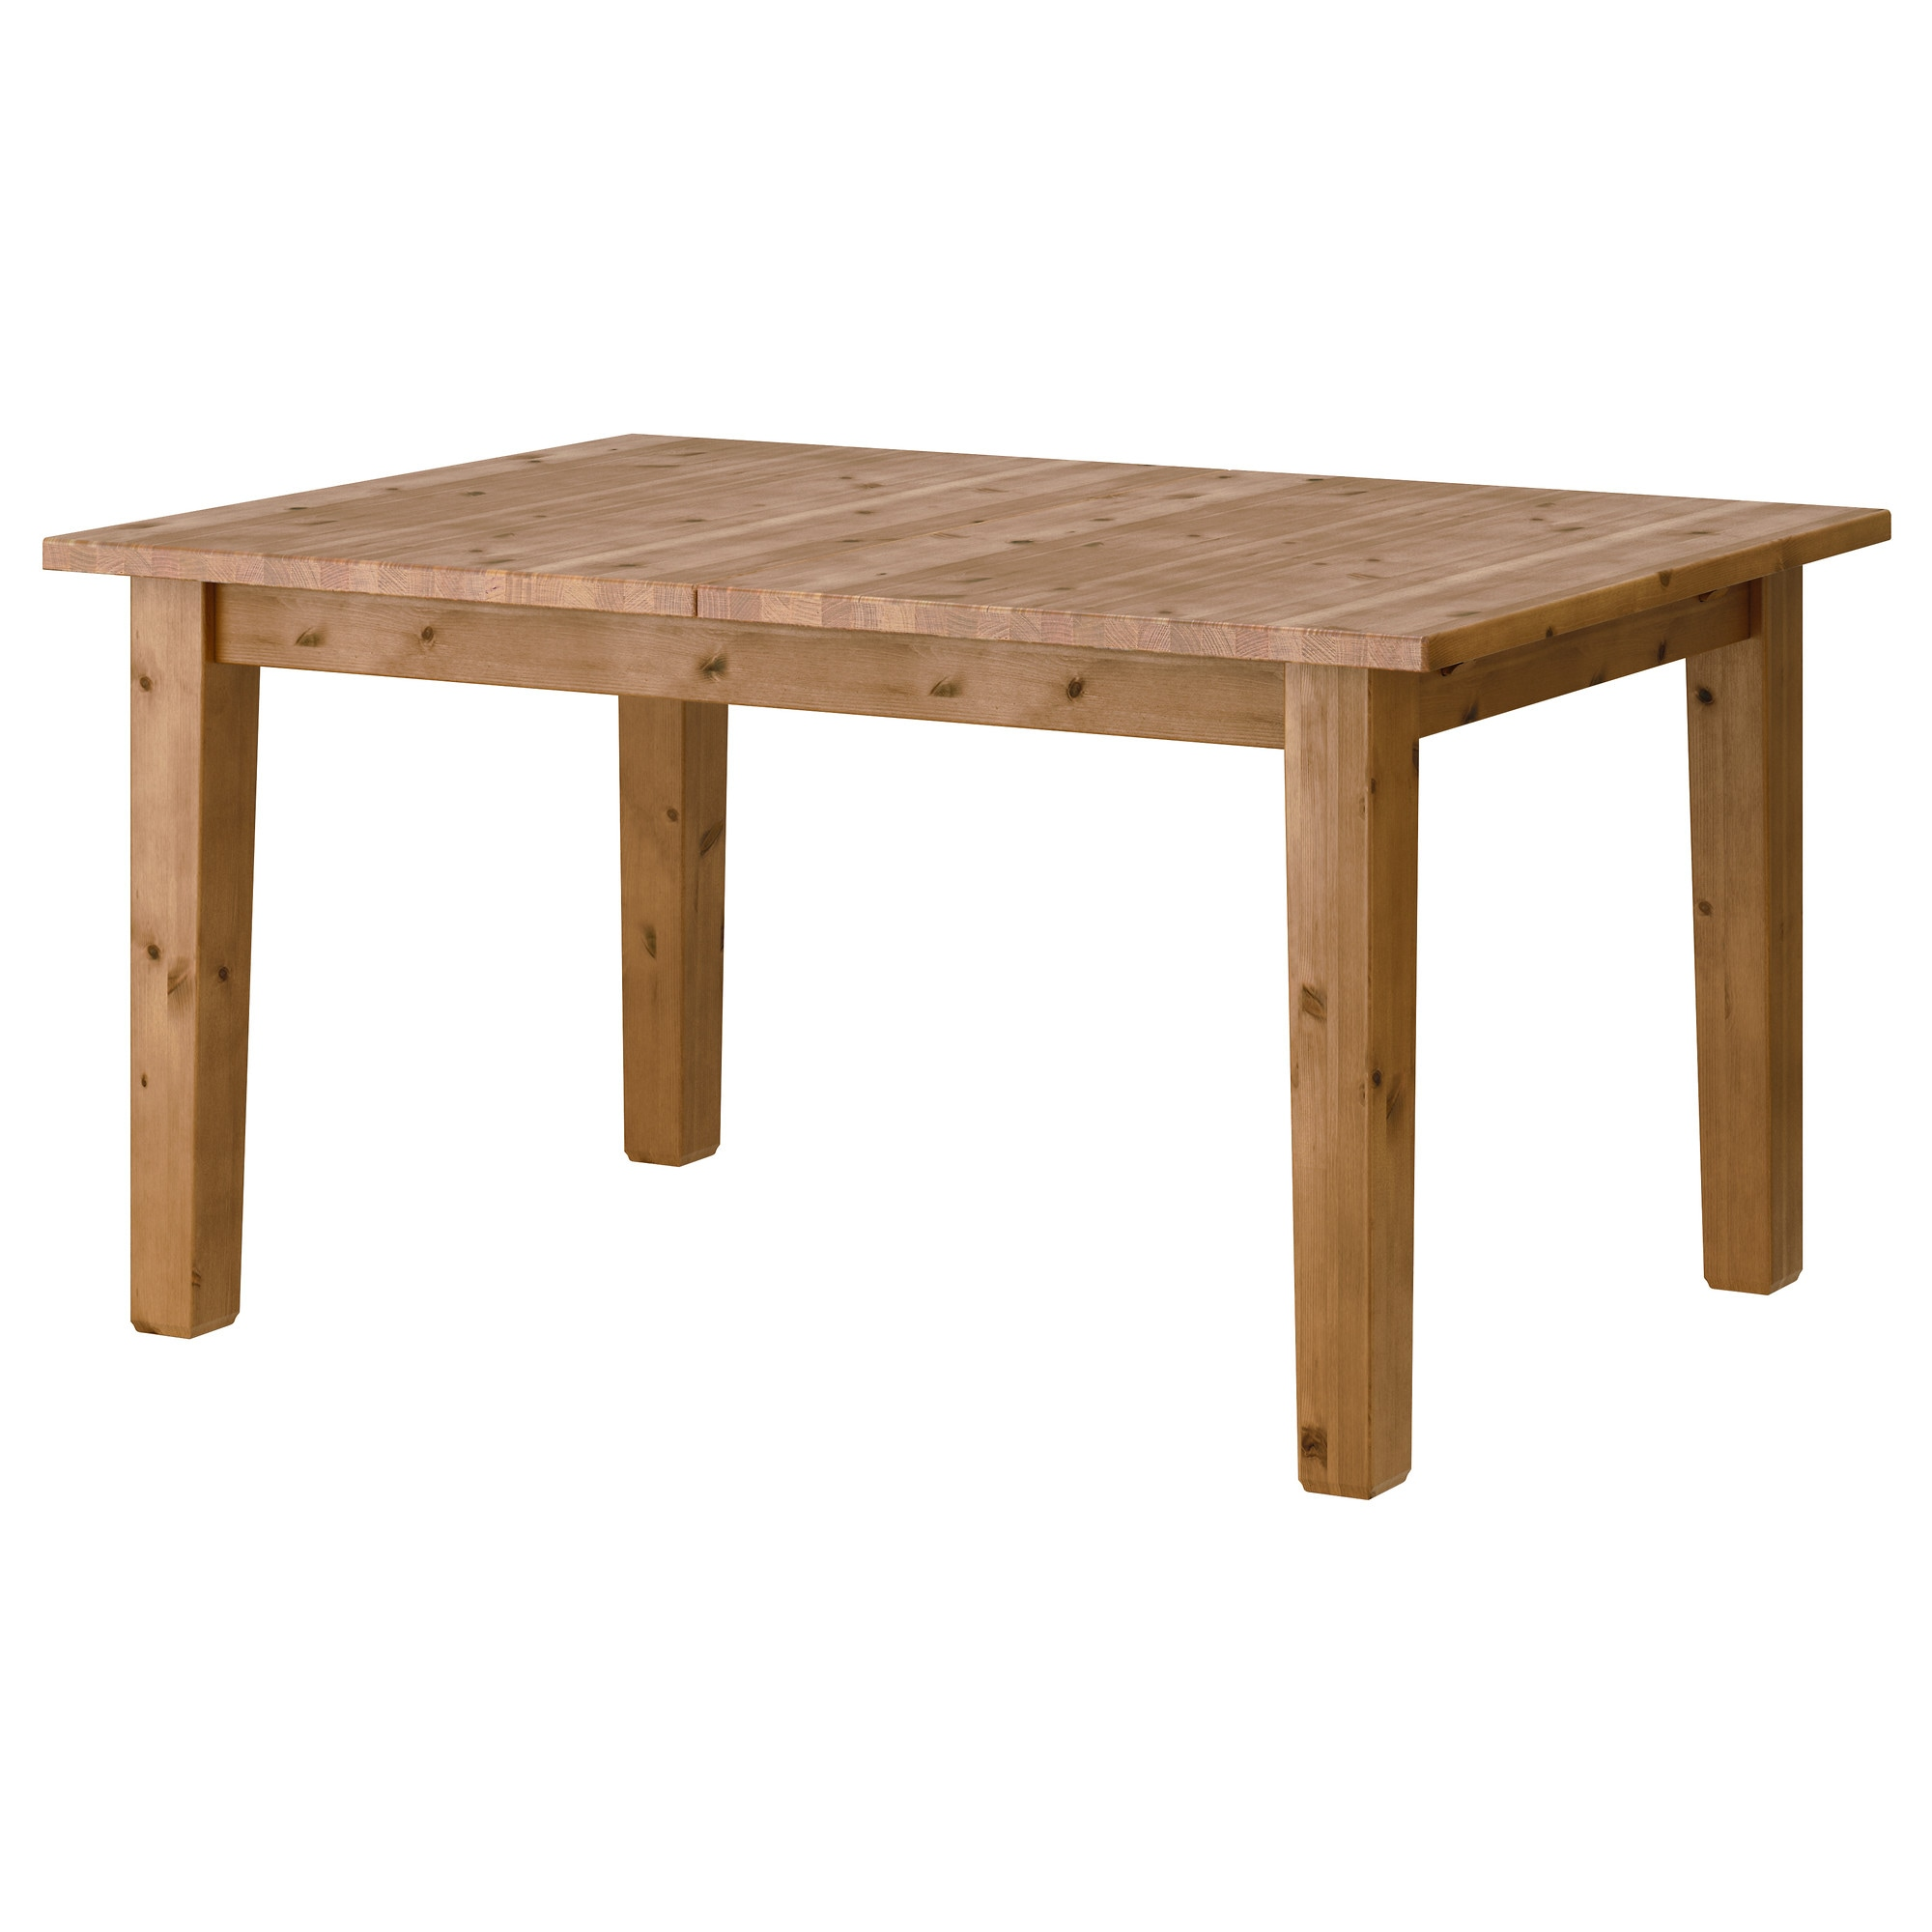 STORNS Extendable table IKEA